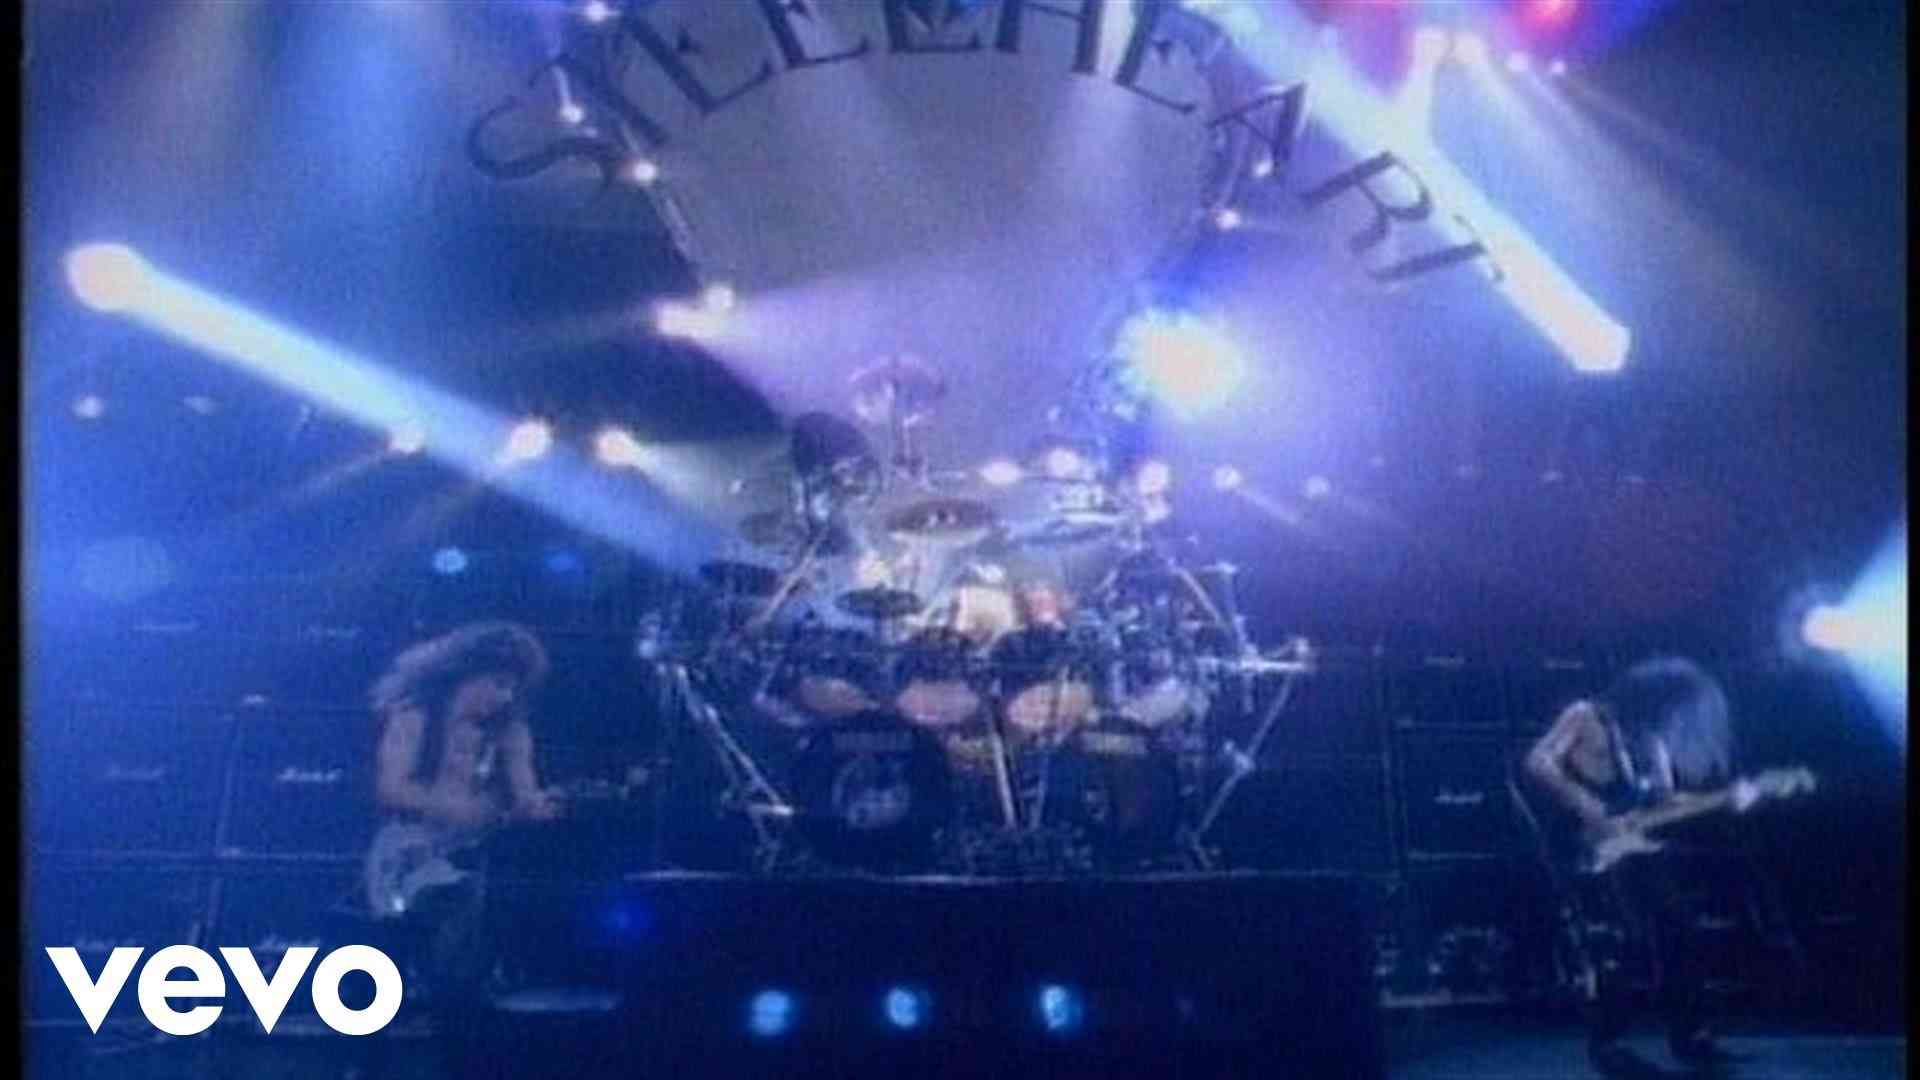 Steelheart - She's Gone - YouTube